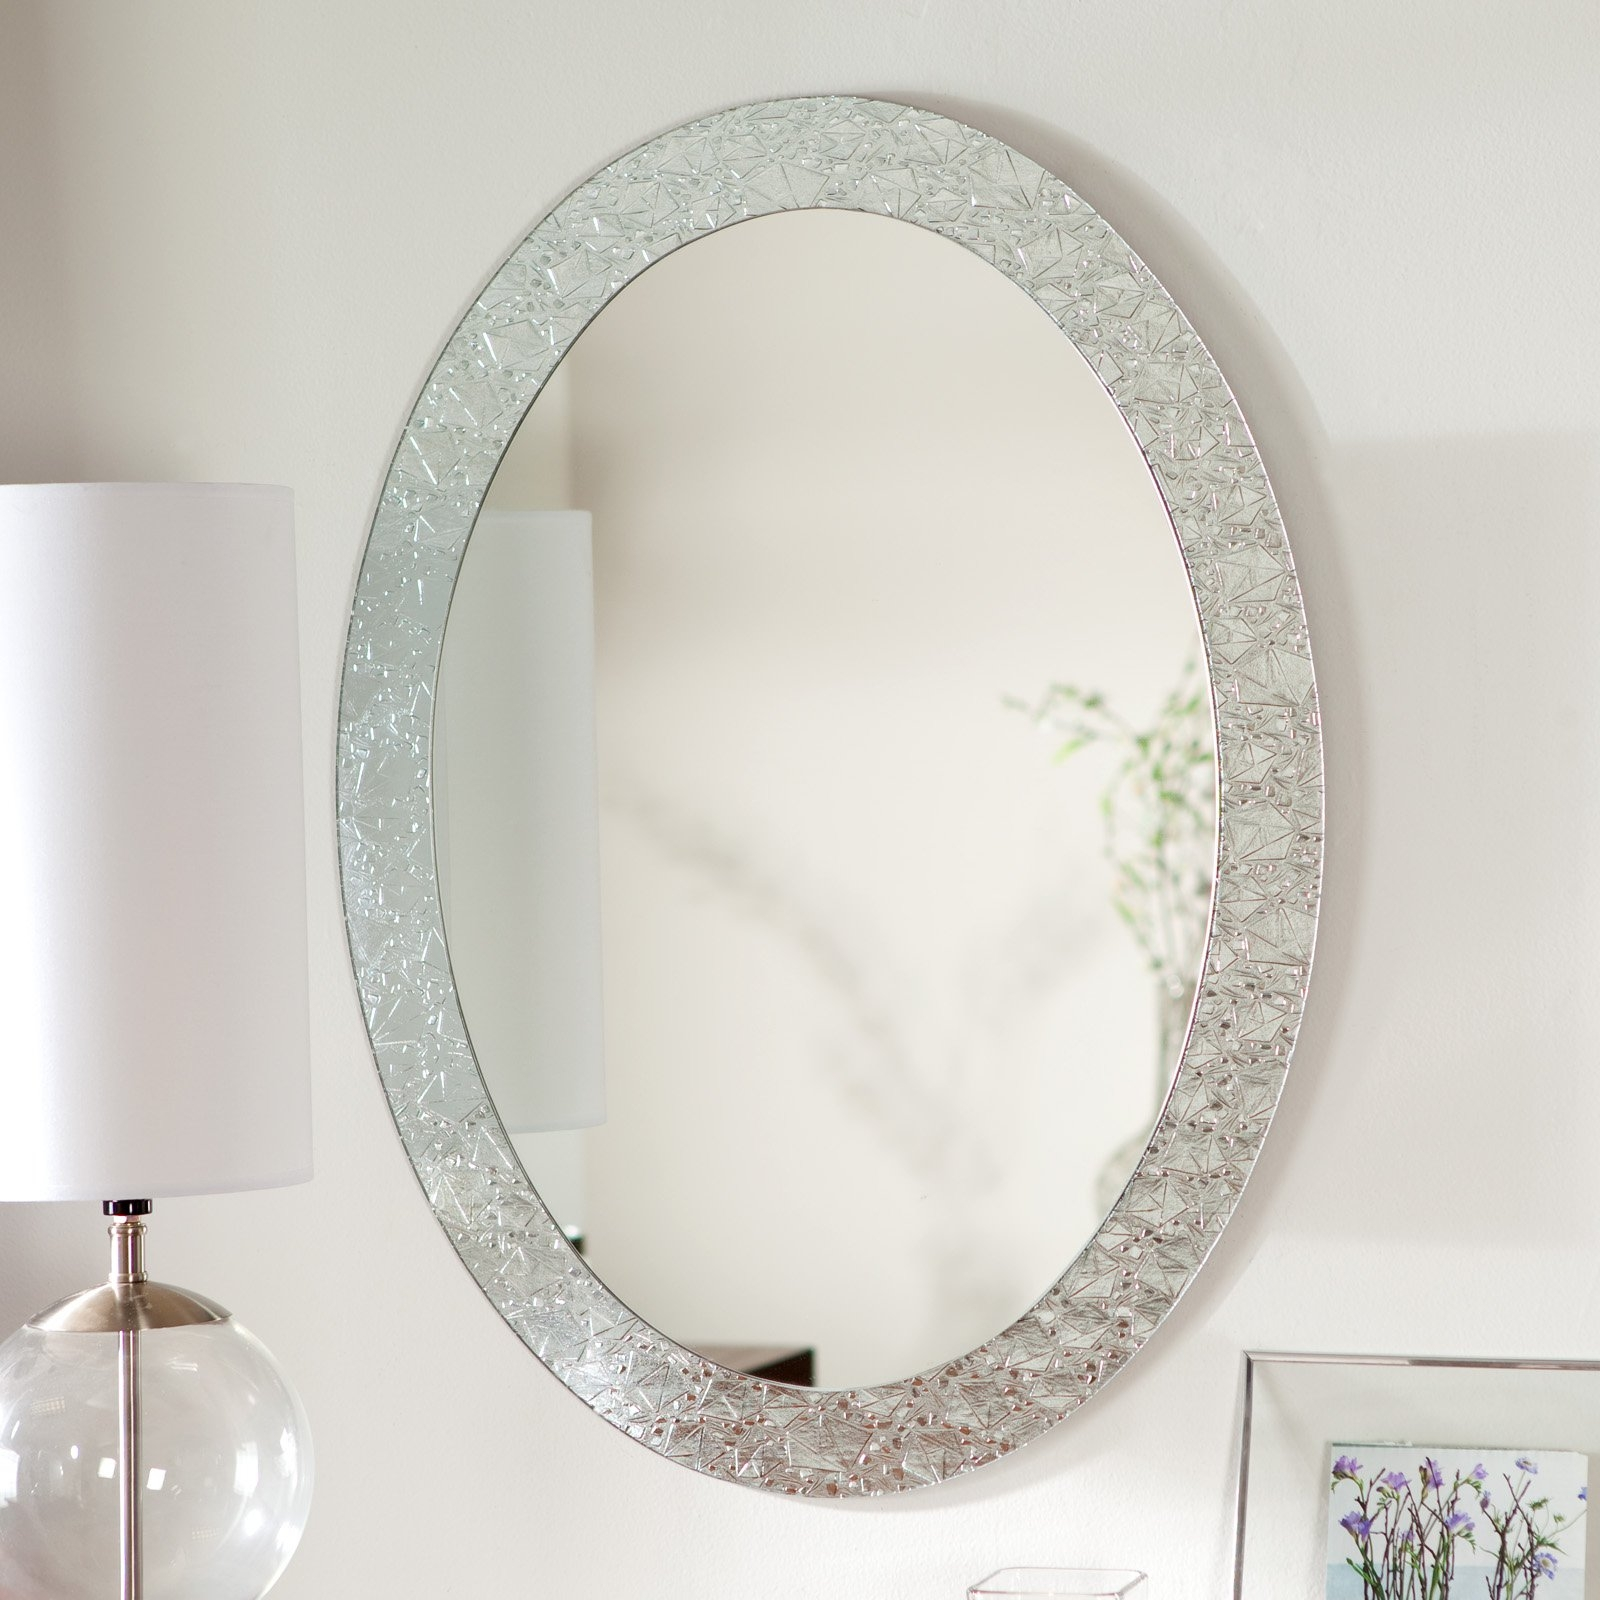 Dcor Wonderland Frameless Crystal Wall Mirror 235w X 315h In For Wall Mirror With Crystals (Image 8 of 15)